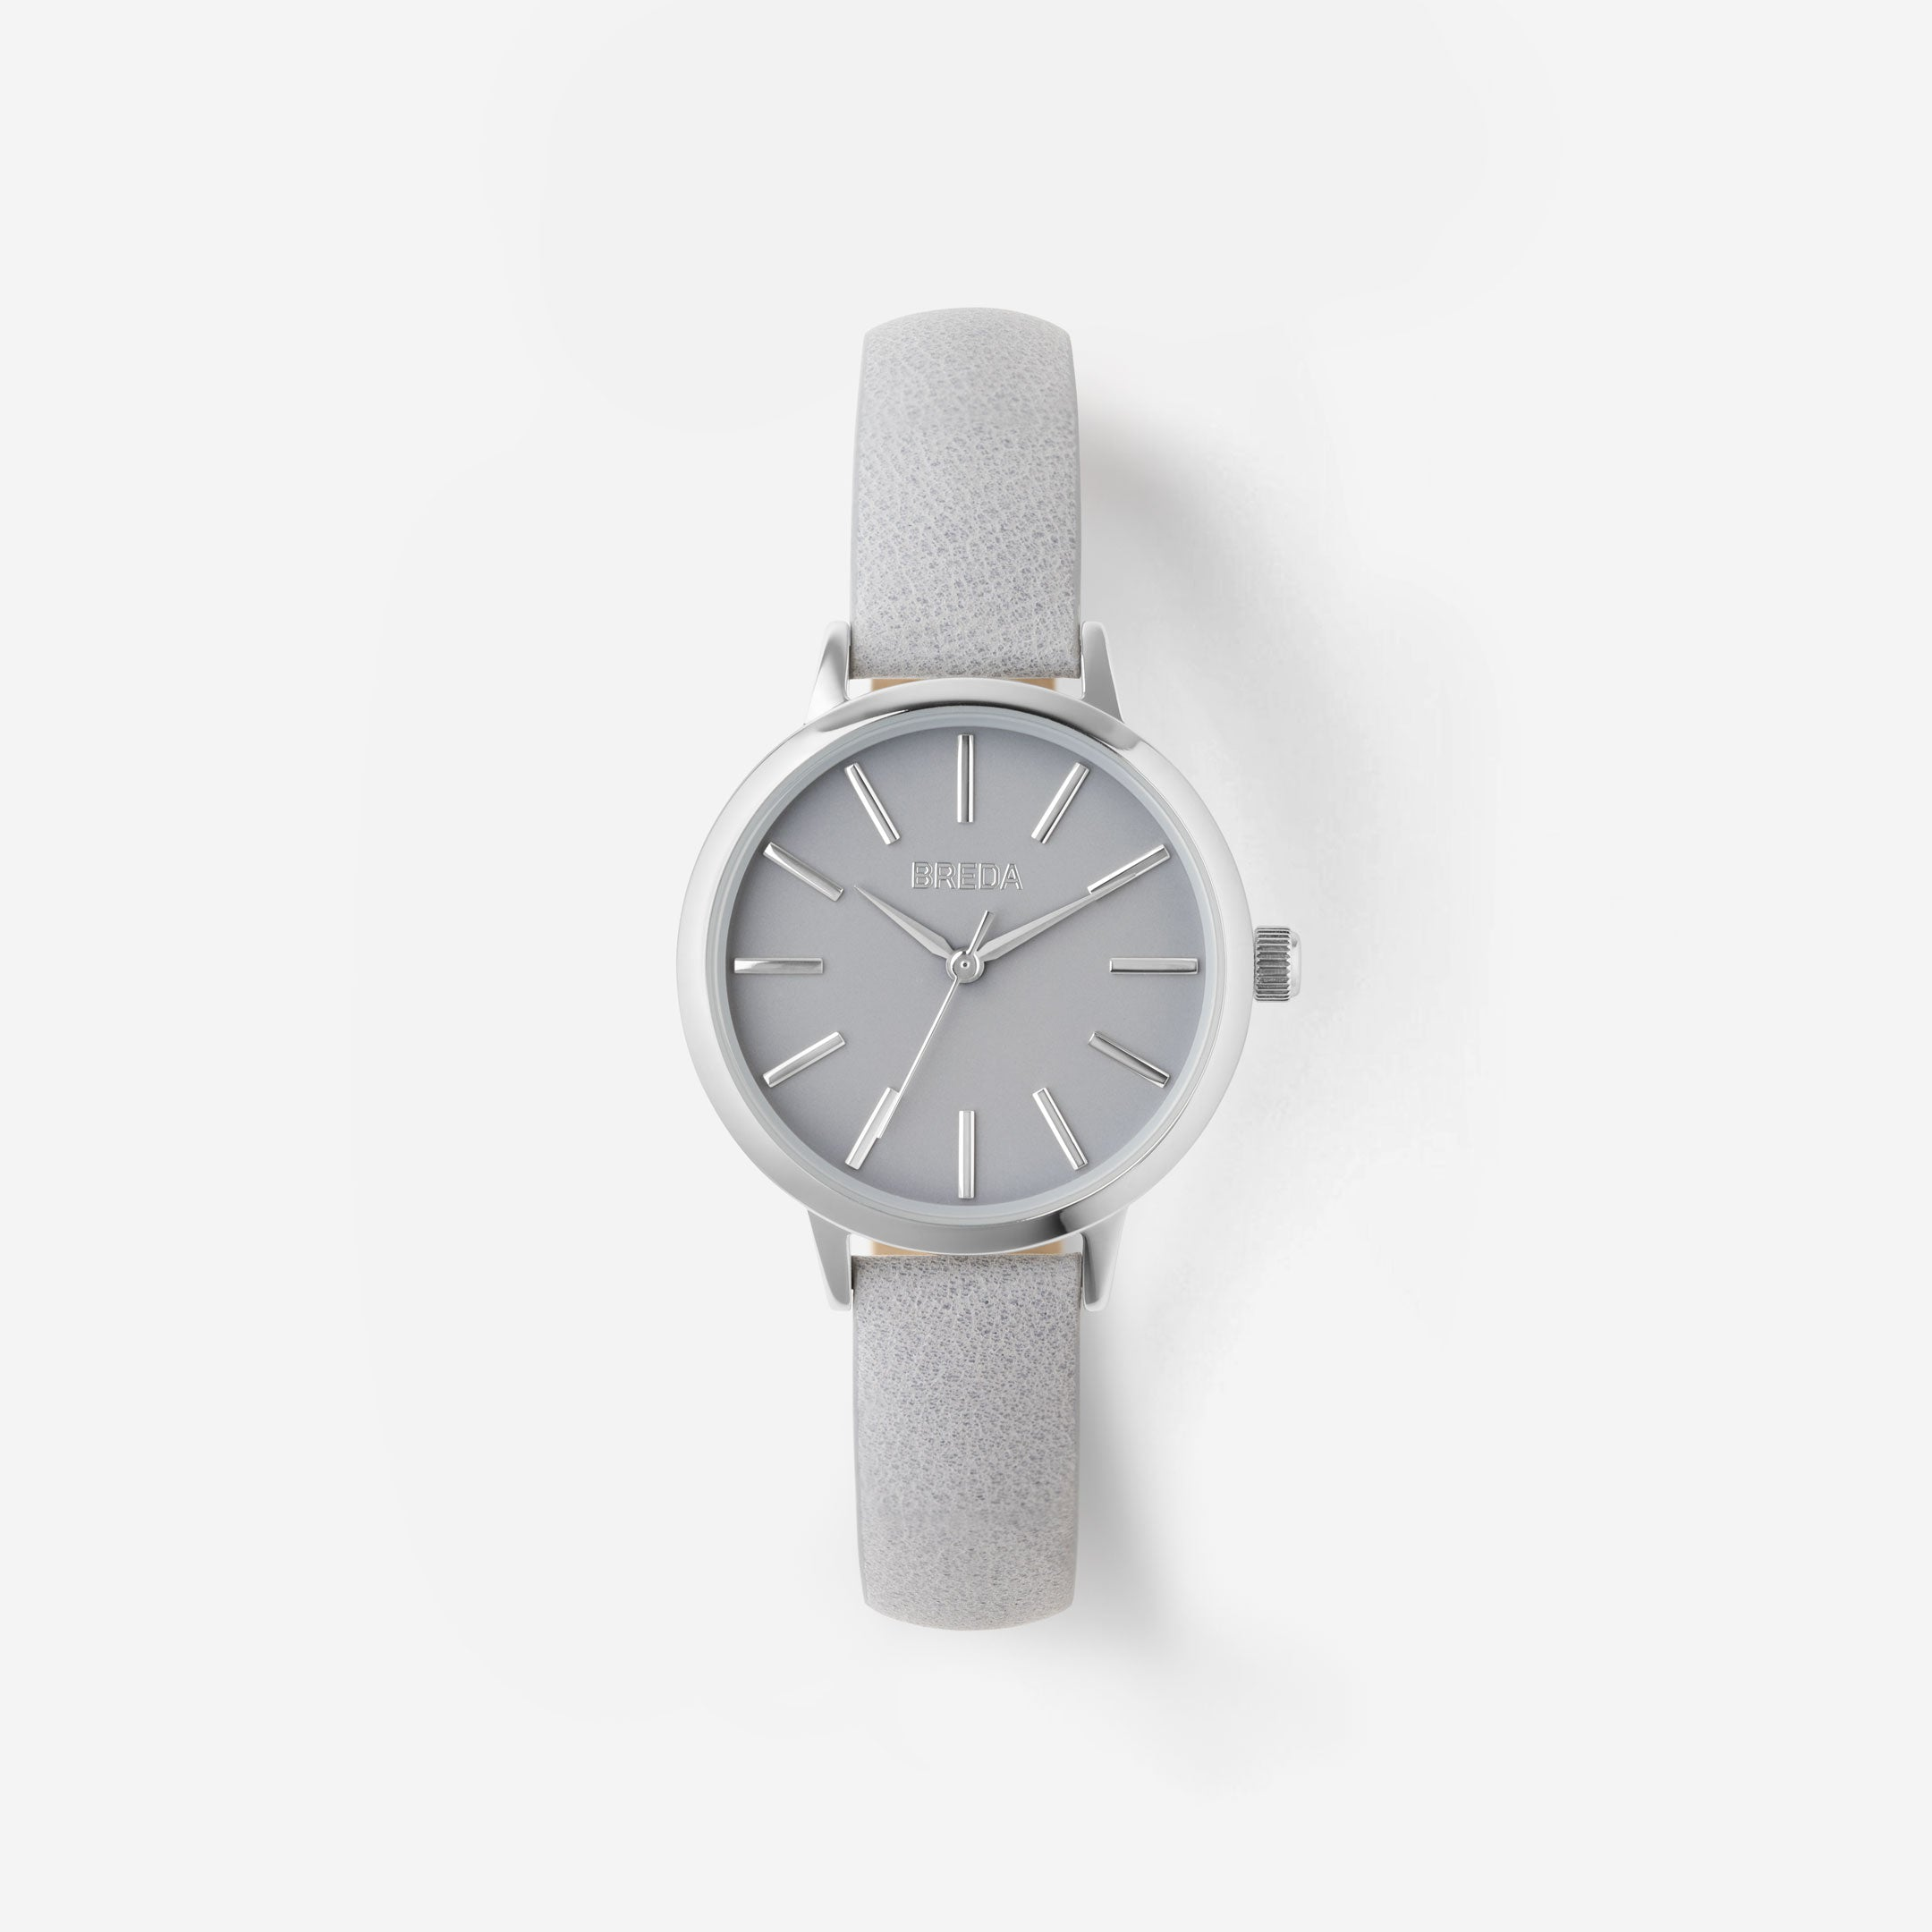 //cdn.shopify.com/s/files/1/0879/6650/products/breda-petite-joule-1734e-silver-gray-watch-front_1024x1024.jpg?v=1530902612